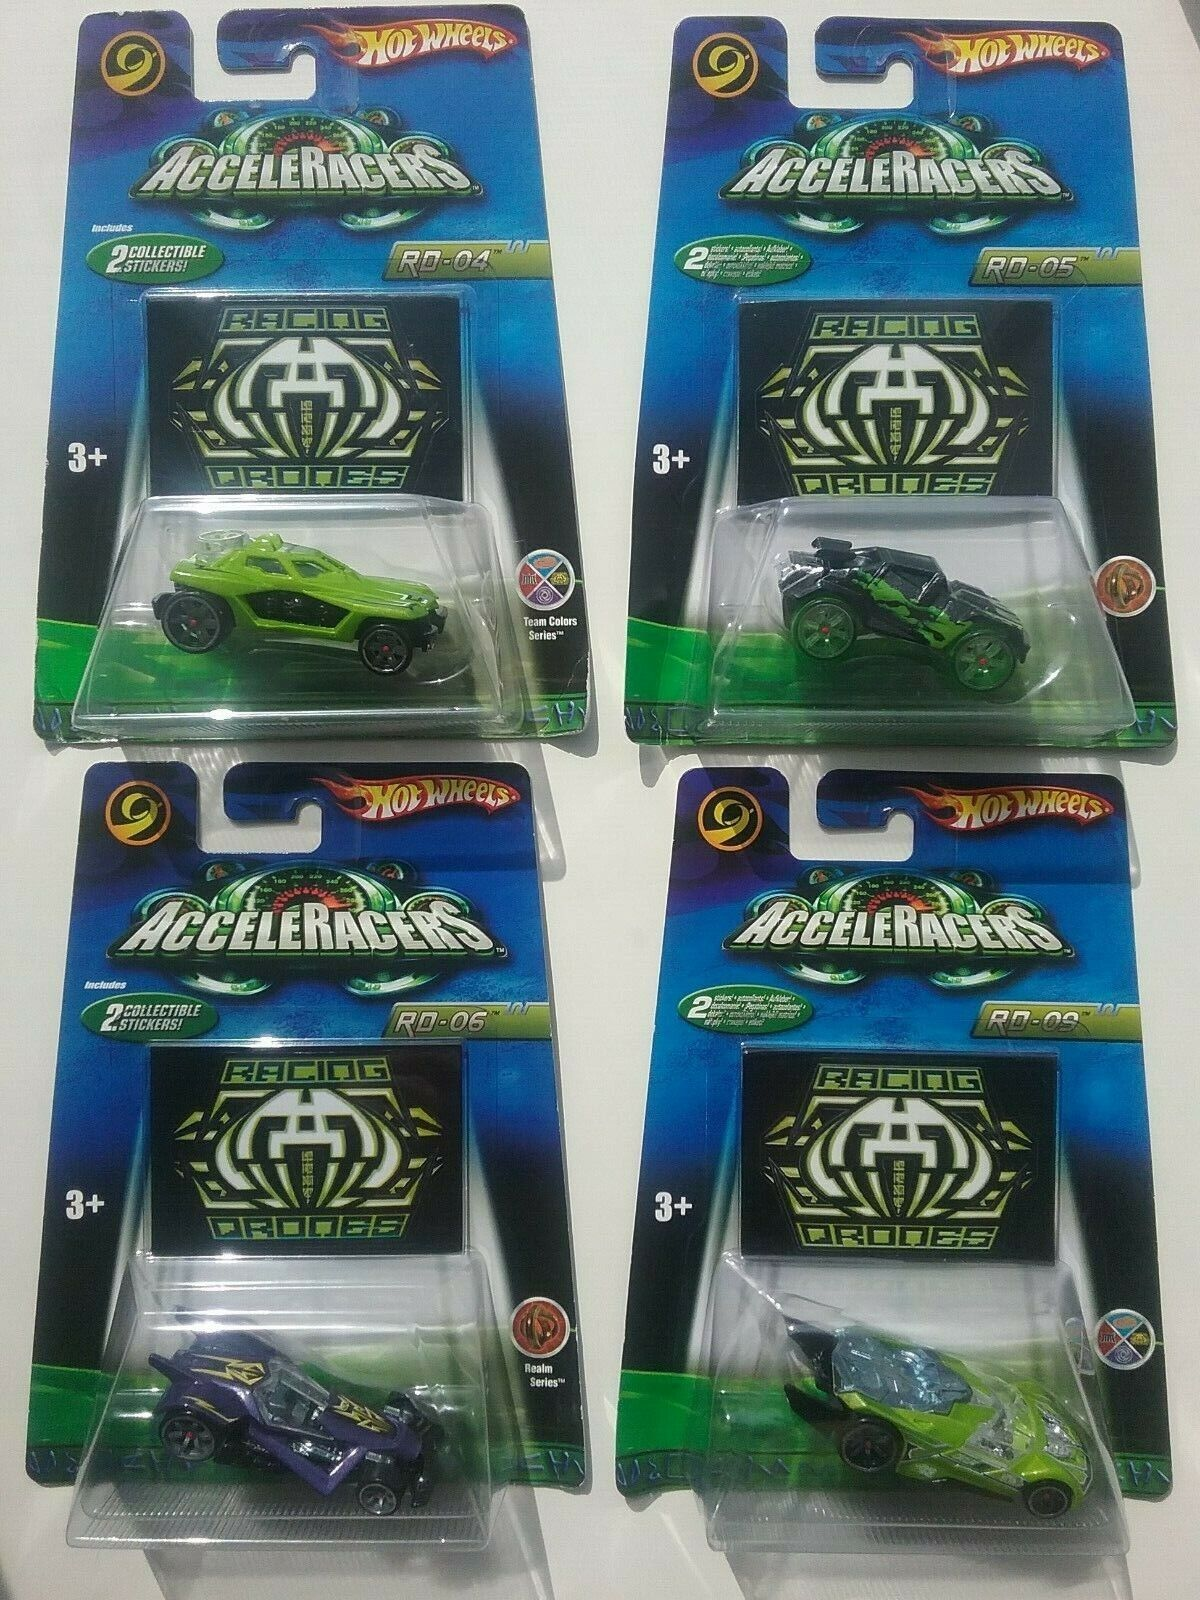 ACCELERACERS Hot Wheels 2006 2nd Gen RACING DRONES Set of 4  New & Free Shipping